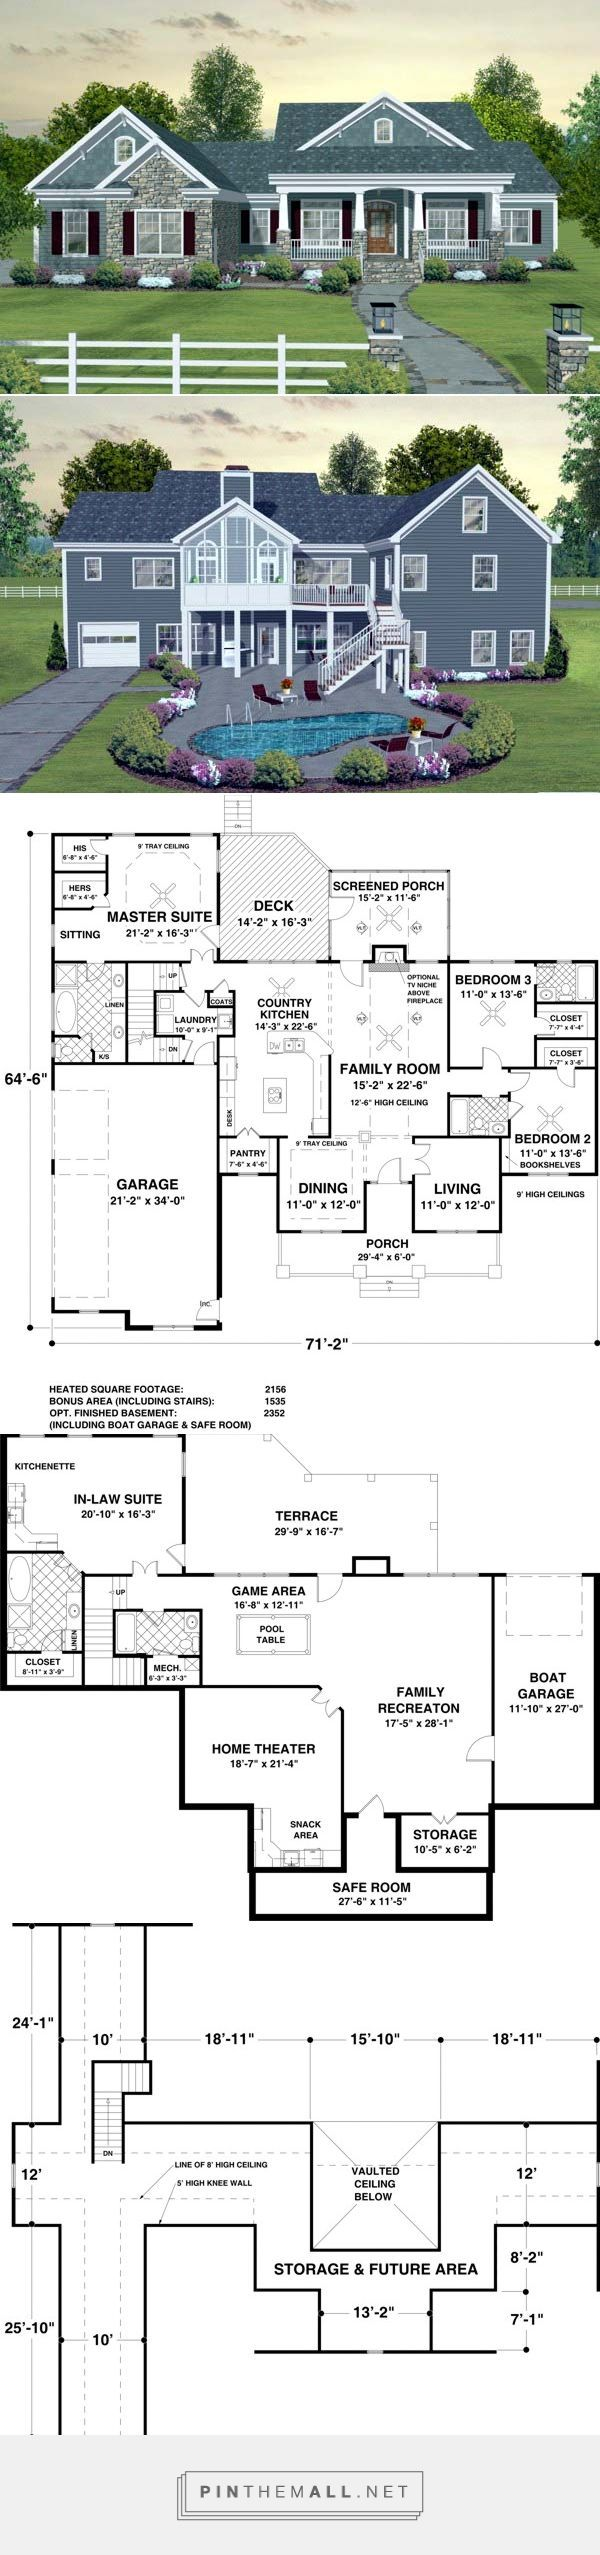 awesome House Plan chp-45369 at COOLhouseplans.com... - a grouped images picture by http://www.best99-home-decorpictures.us/dream-homes/house-plan-chp-45369-at-coolhouseplans-com-a-grouped-images-picture/